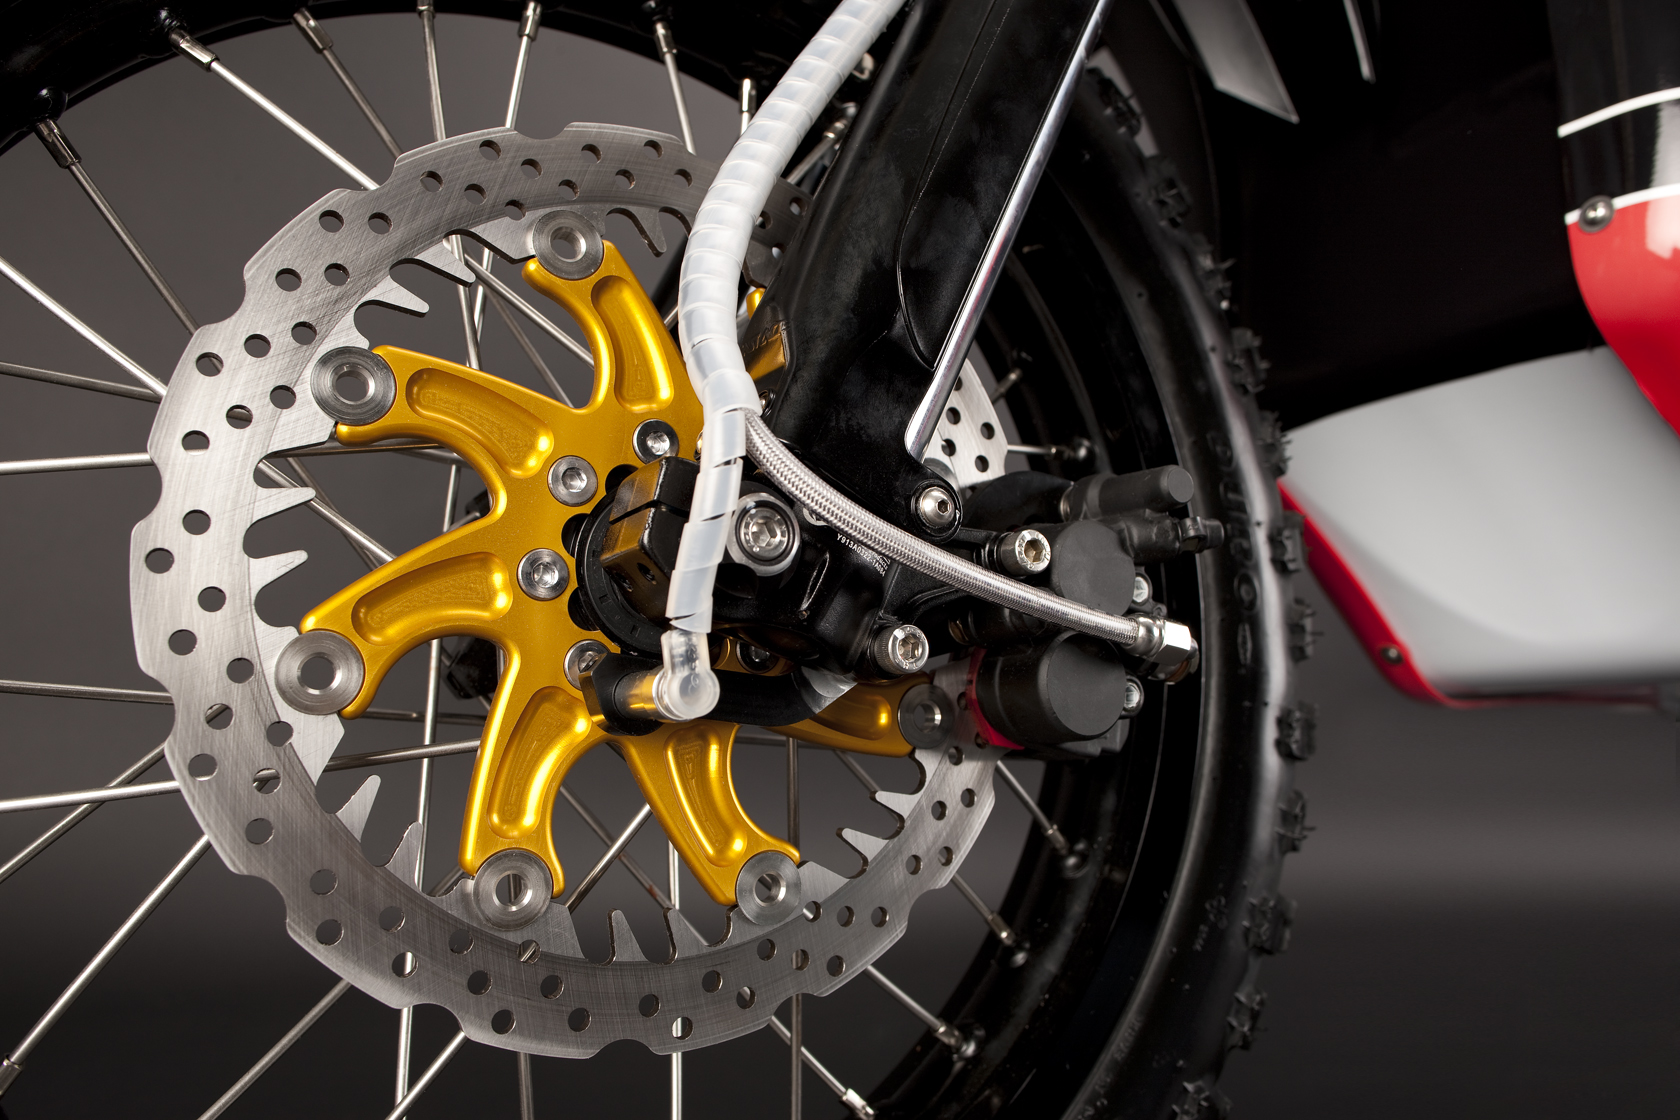 2010 Zero DS Electric Motorcycle: Front Brake